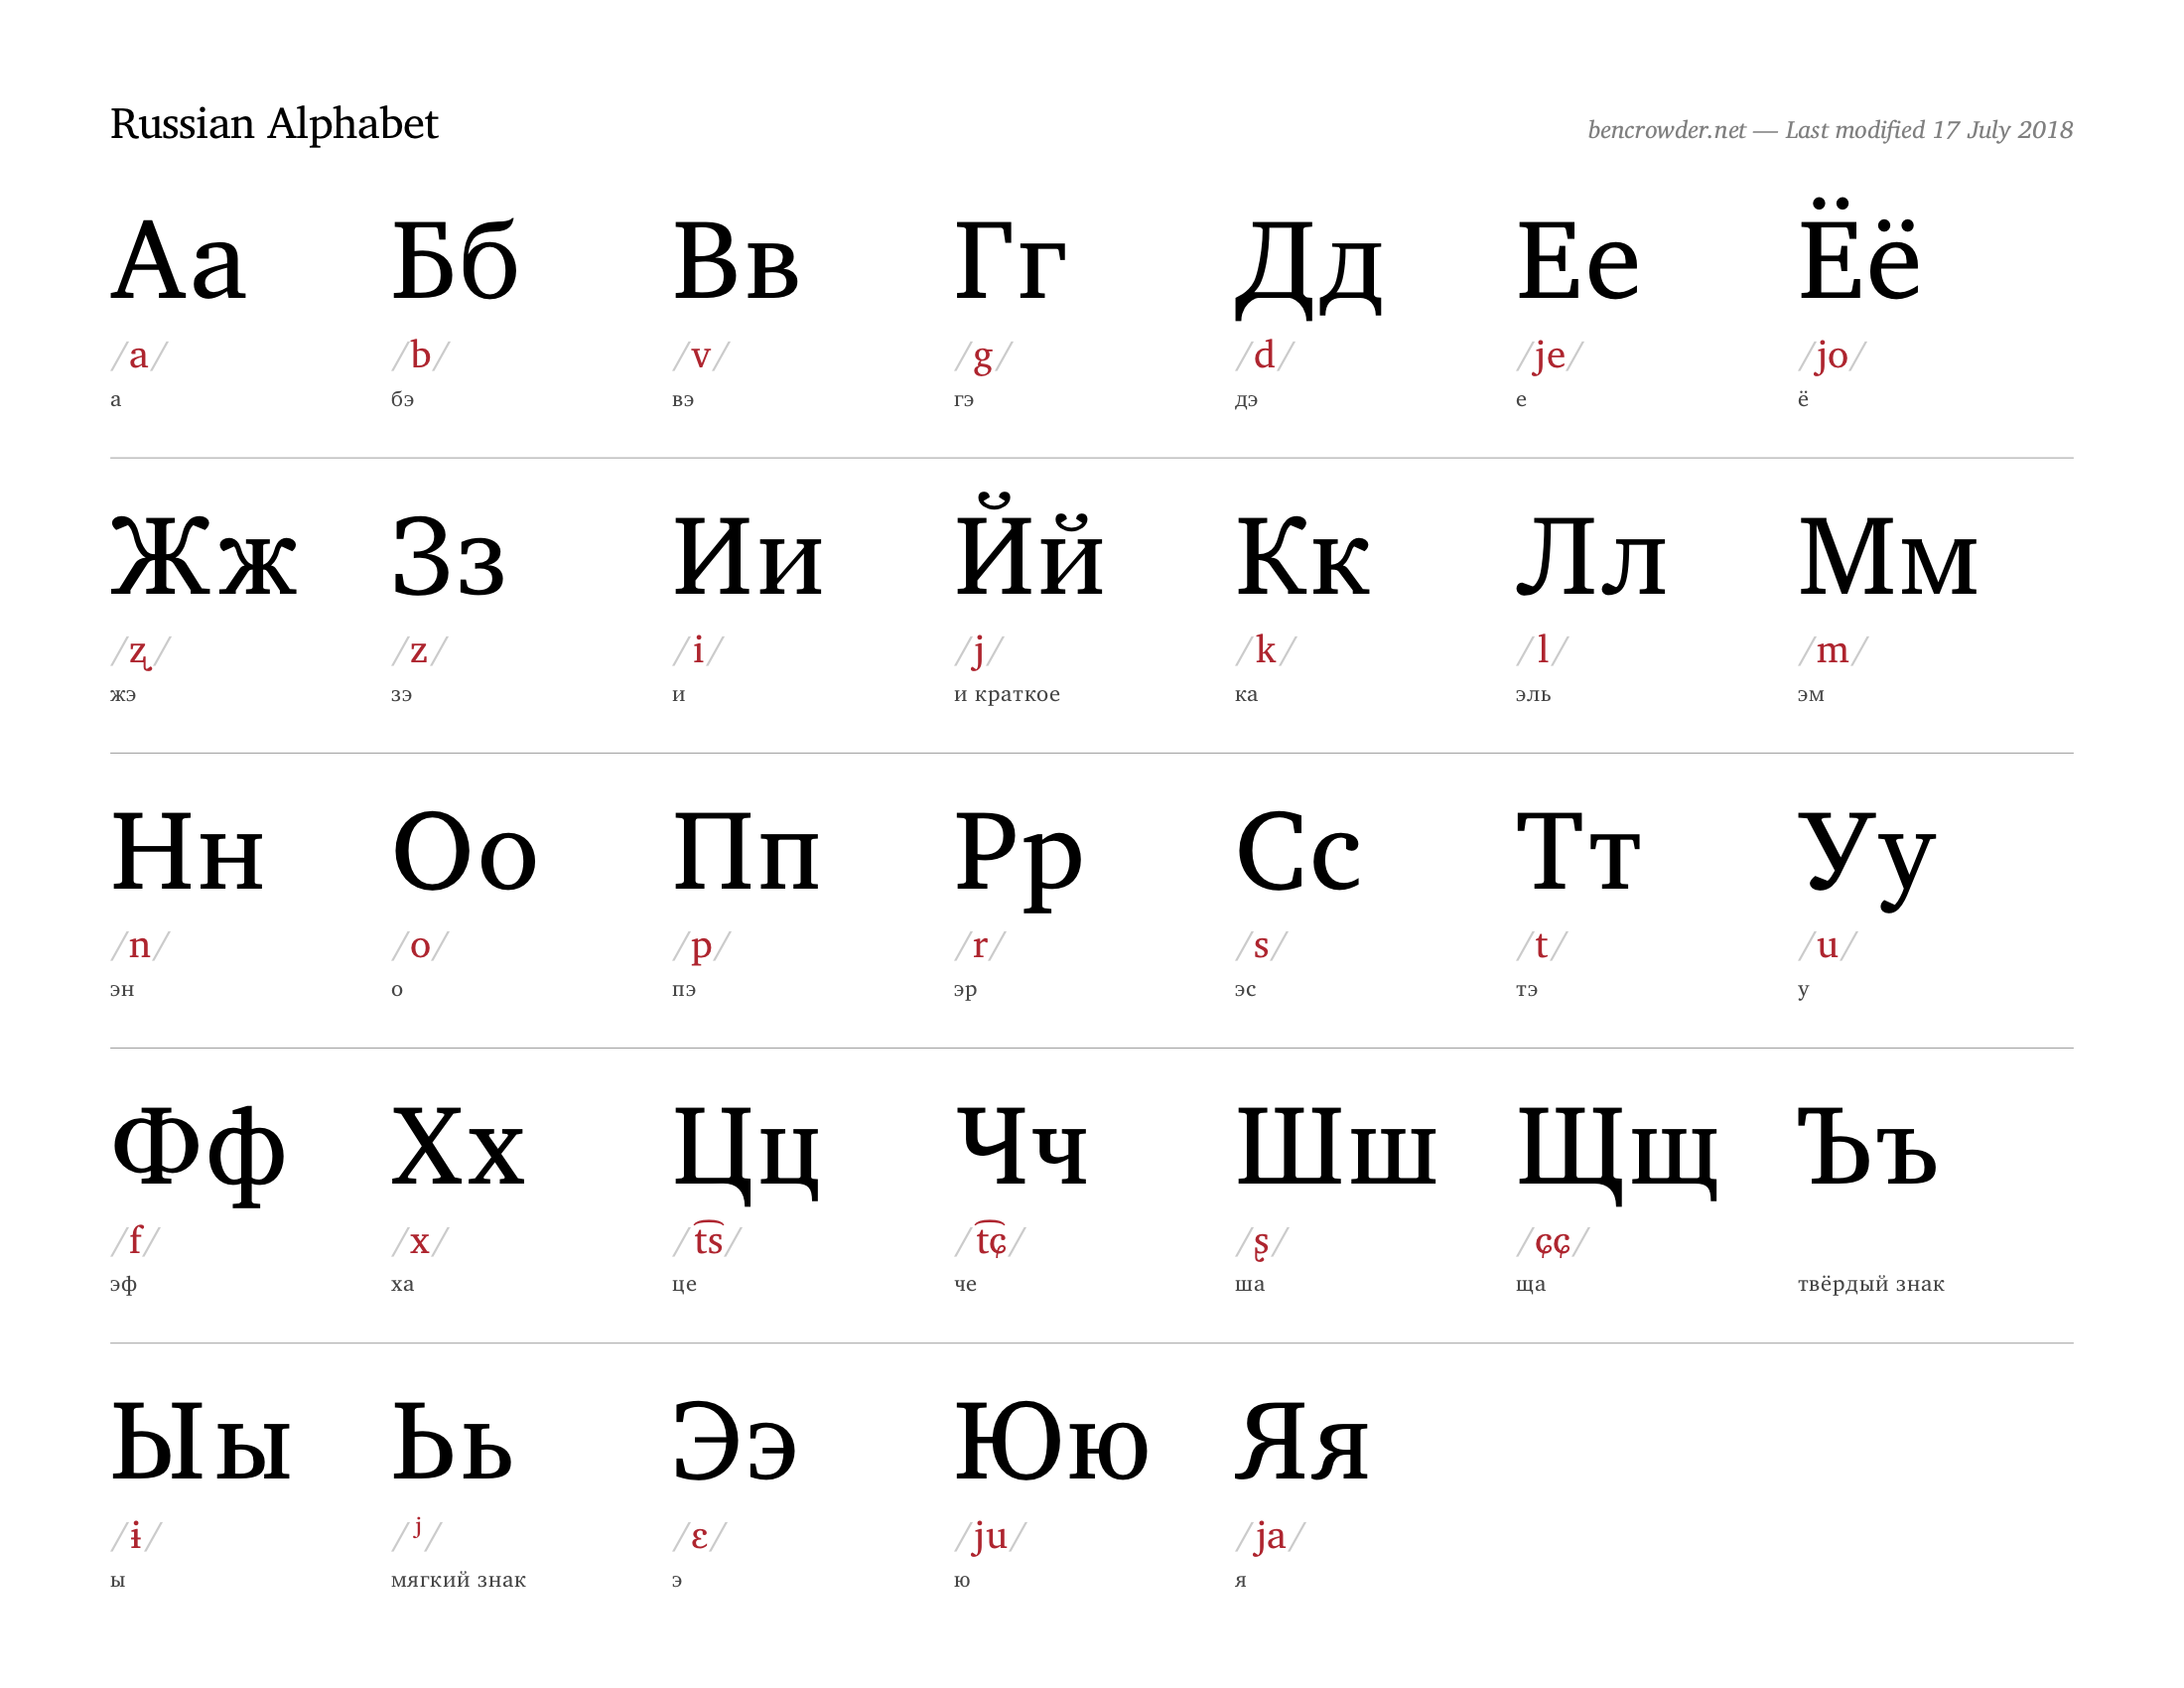 For The Russian Alphabet 120